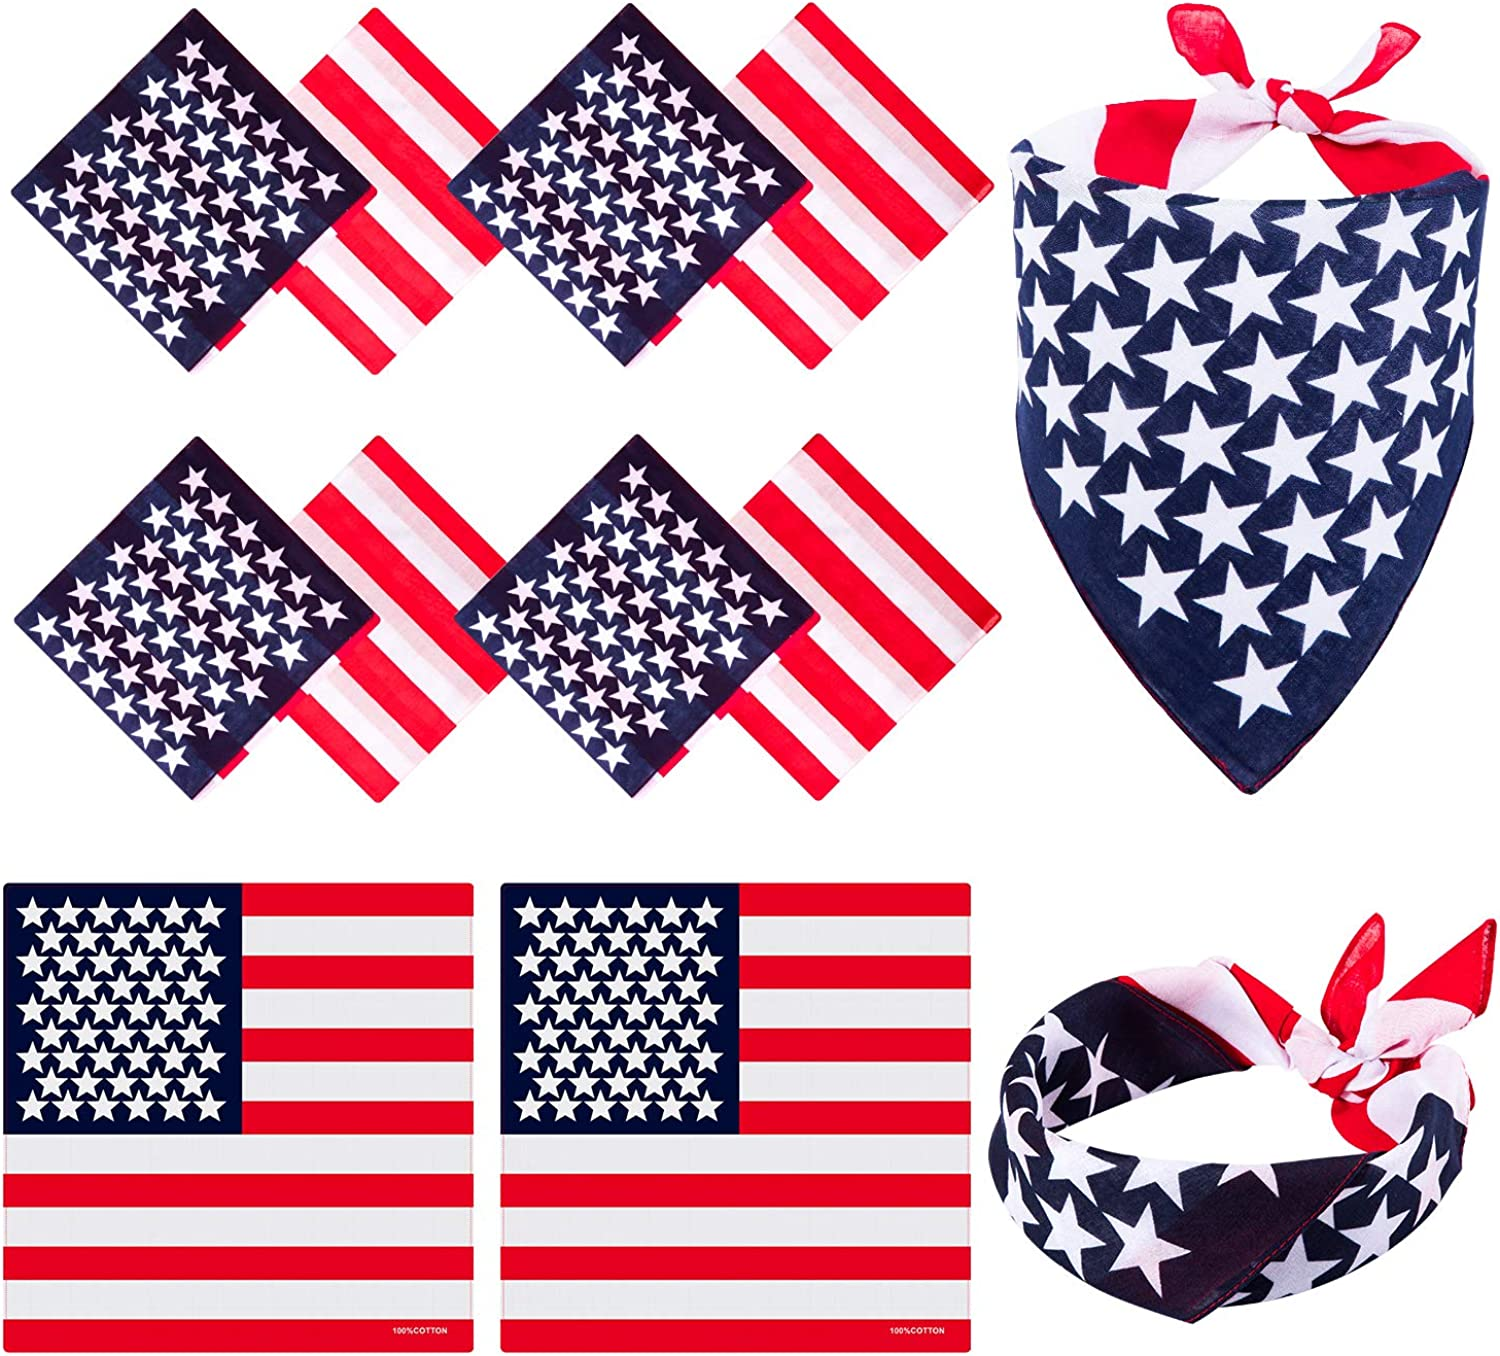 Flags//Bunting//Accessories Robelli Union Jack Party Supplies 3 x Bandanna, Multi